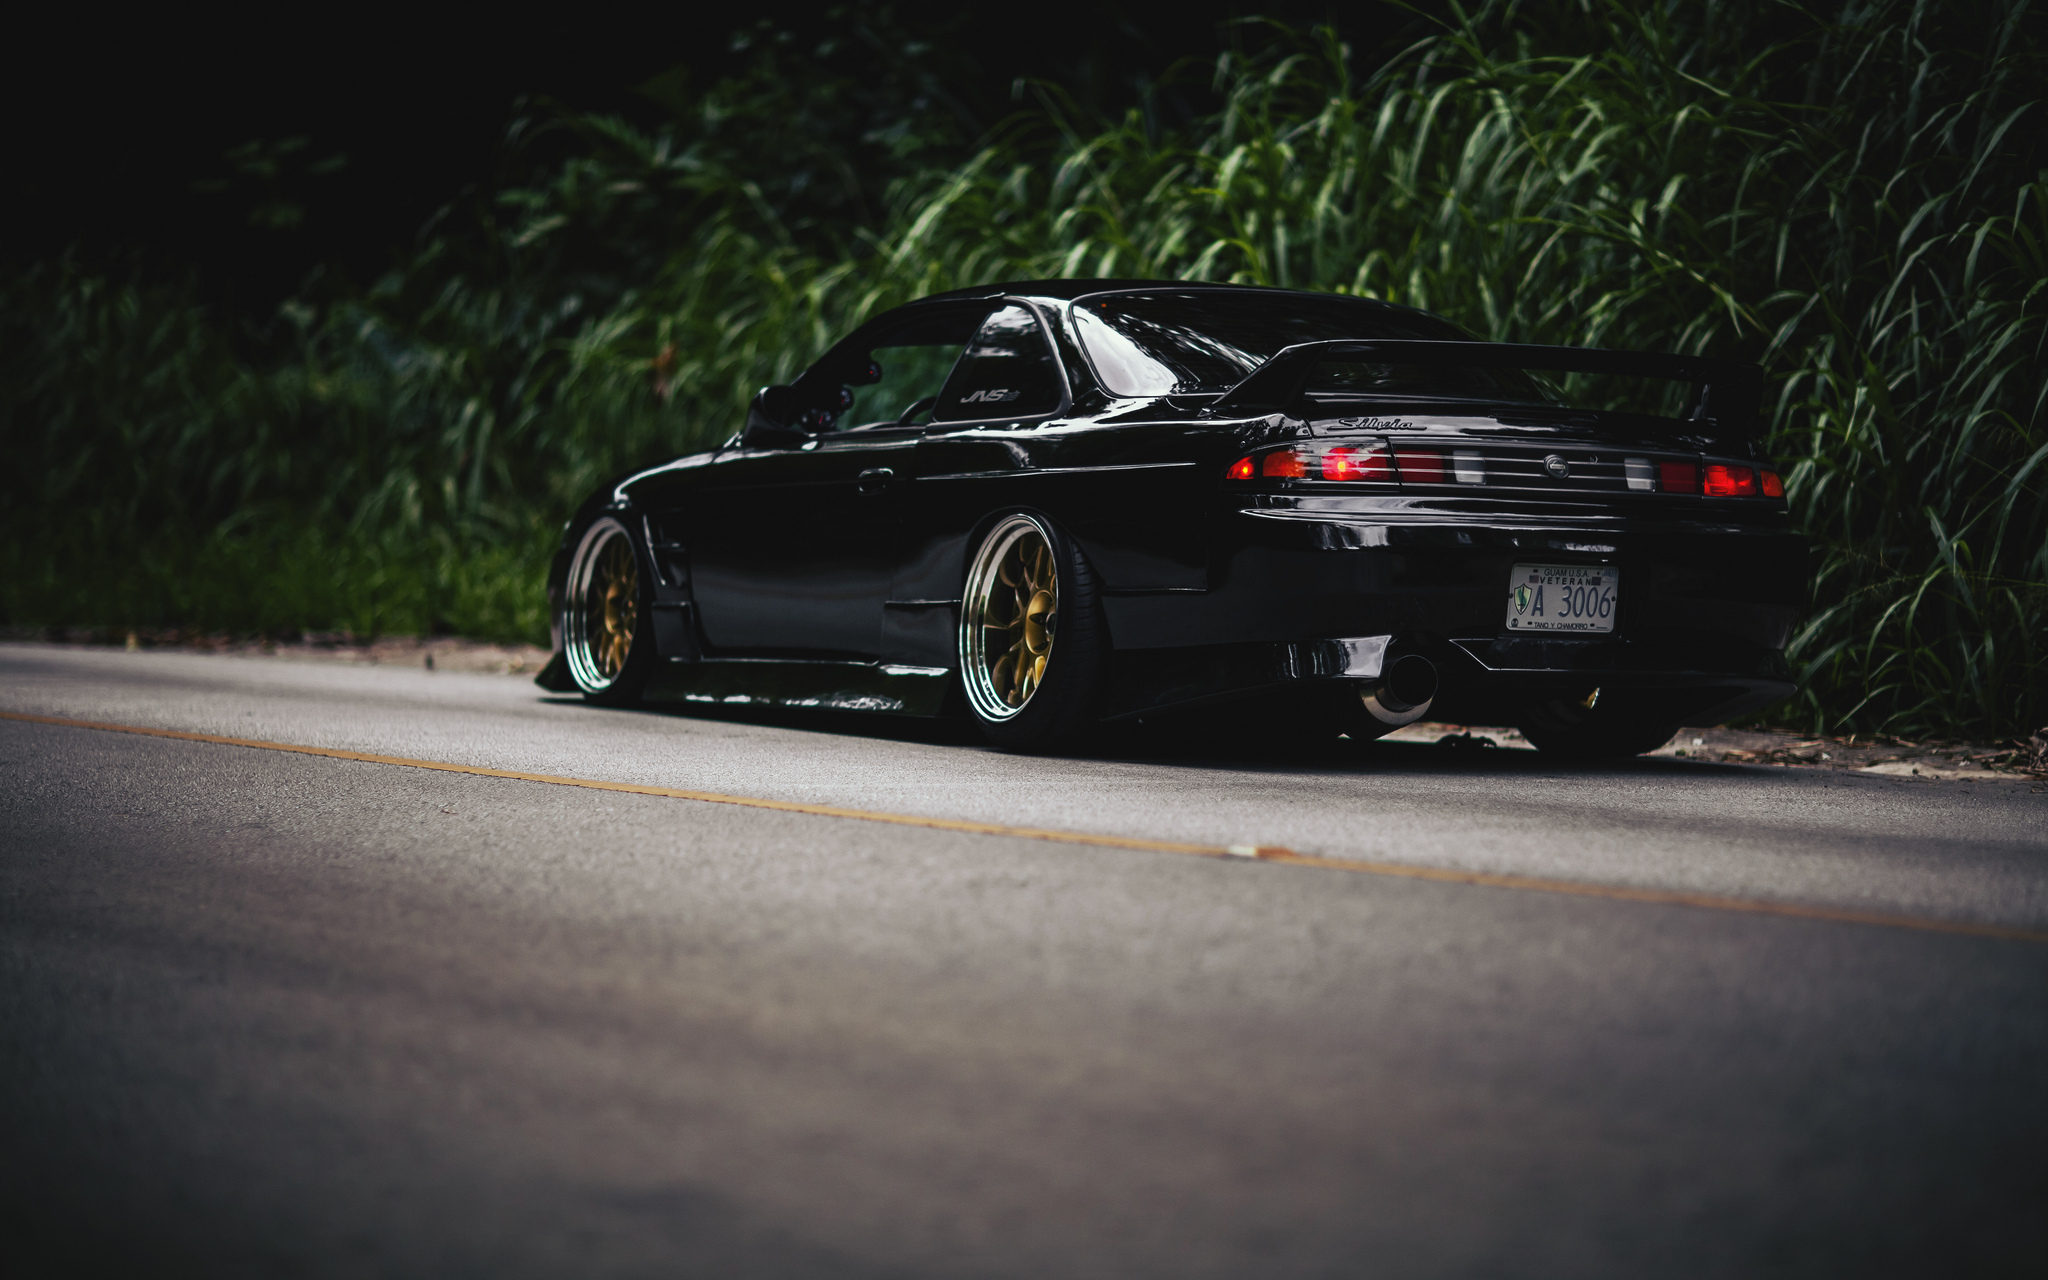 2048x1280 - Nissan Silvia S14 Wallpapers 2